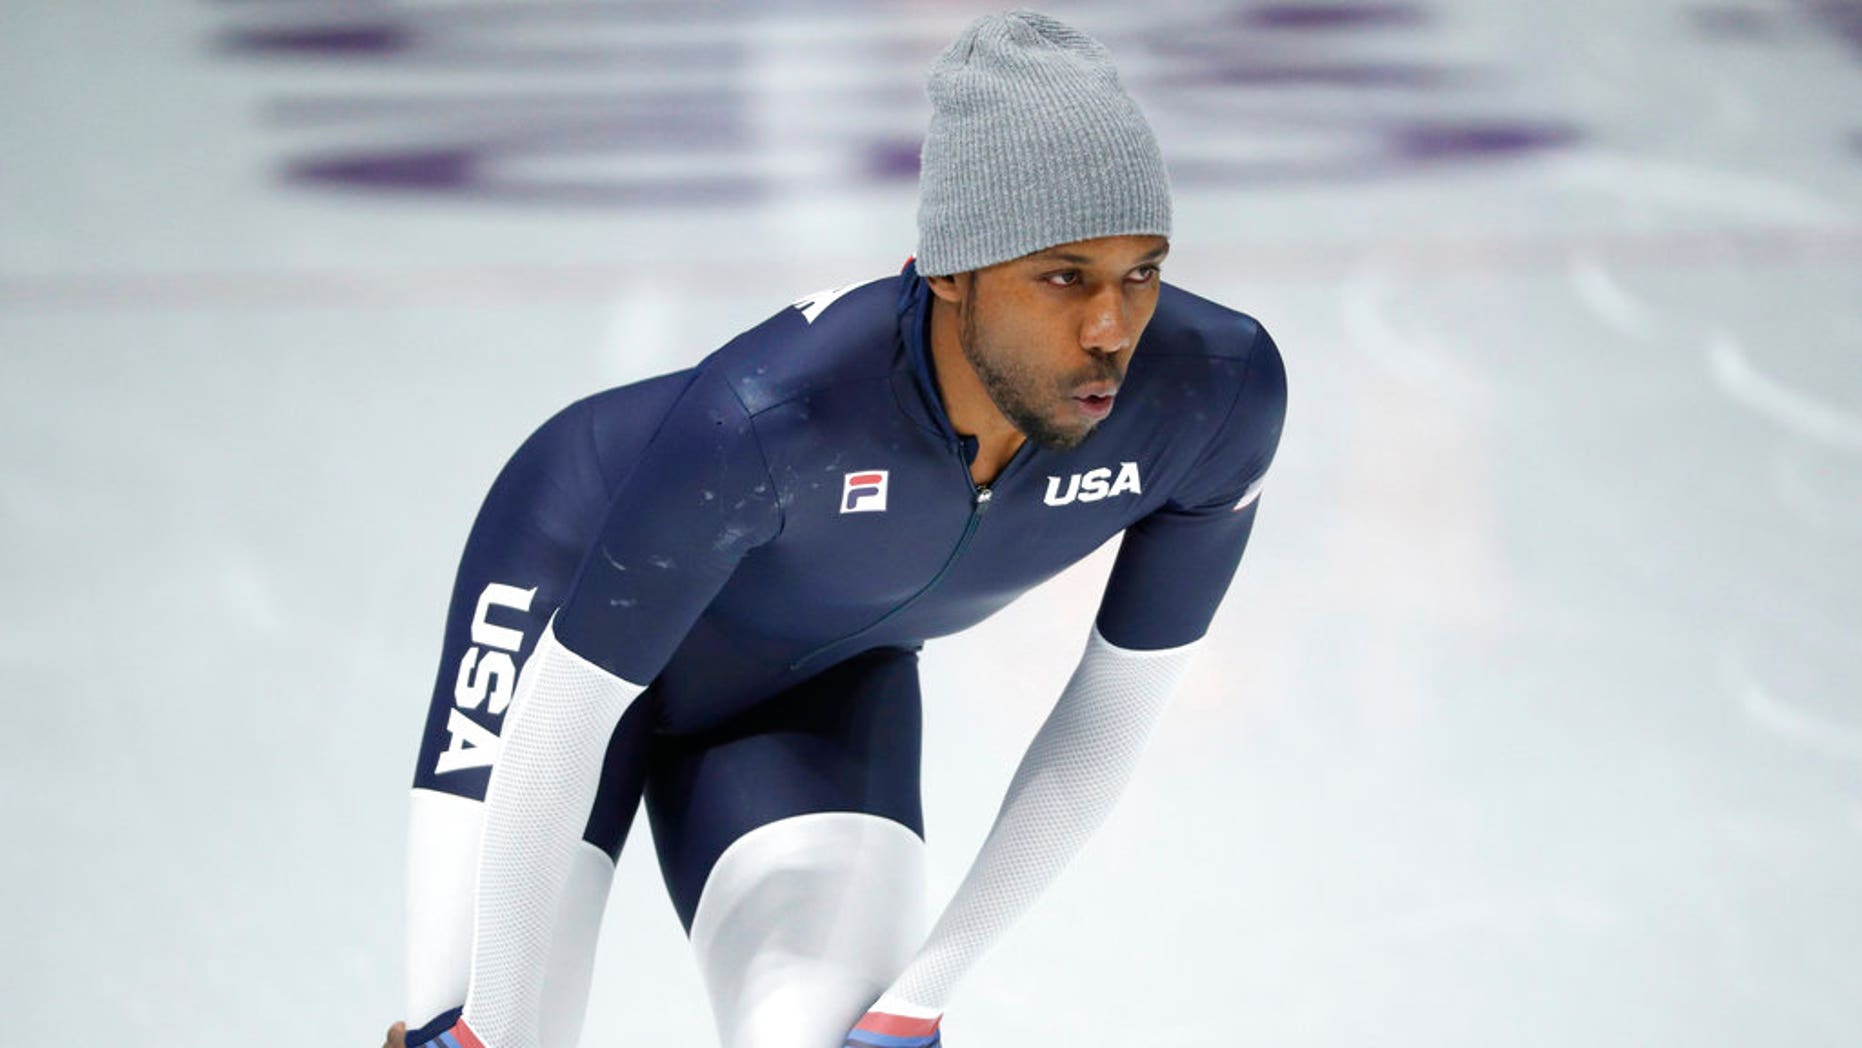 U.S. speedskater Shani Davis expressed frustration for not being chosen Team USA's flag bearer for Friday's opening ceremony at the Winter Olympics in South Korea.